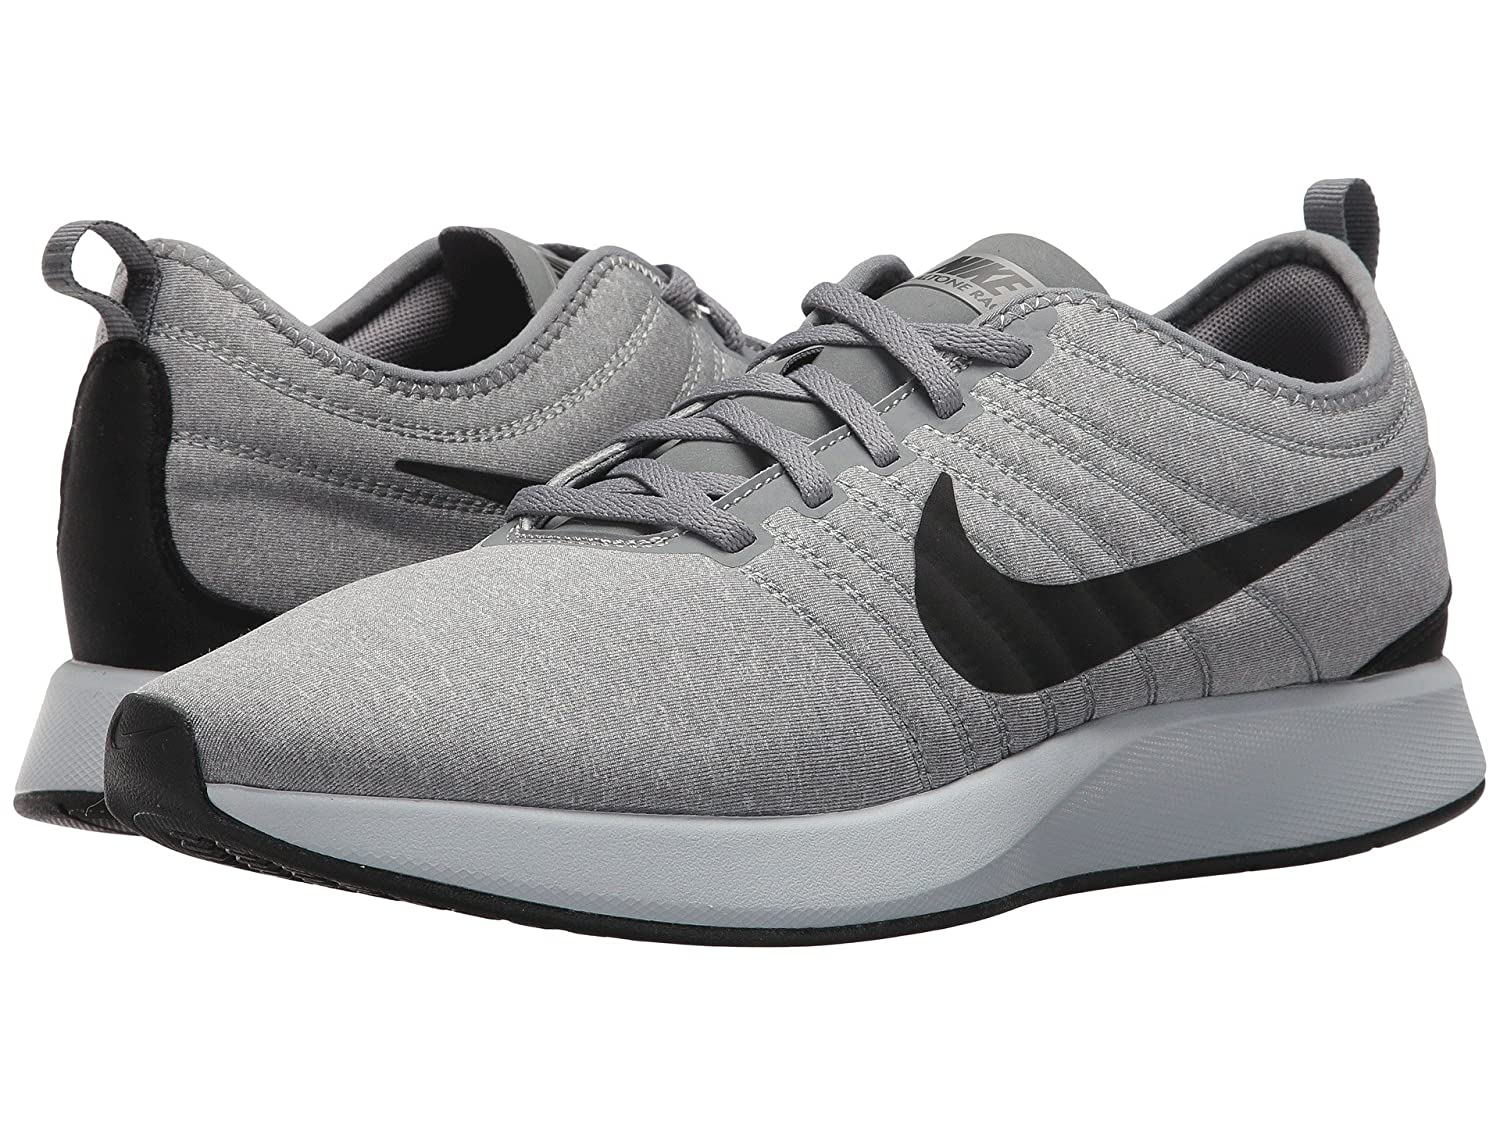 Nike Cool Nike Men s Dualtone Racer B01GZ1X1MG Casual Shoe Cool Grey